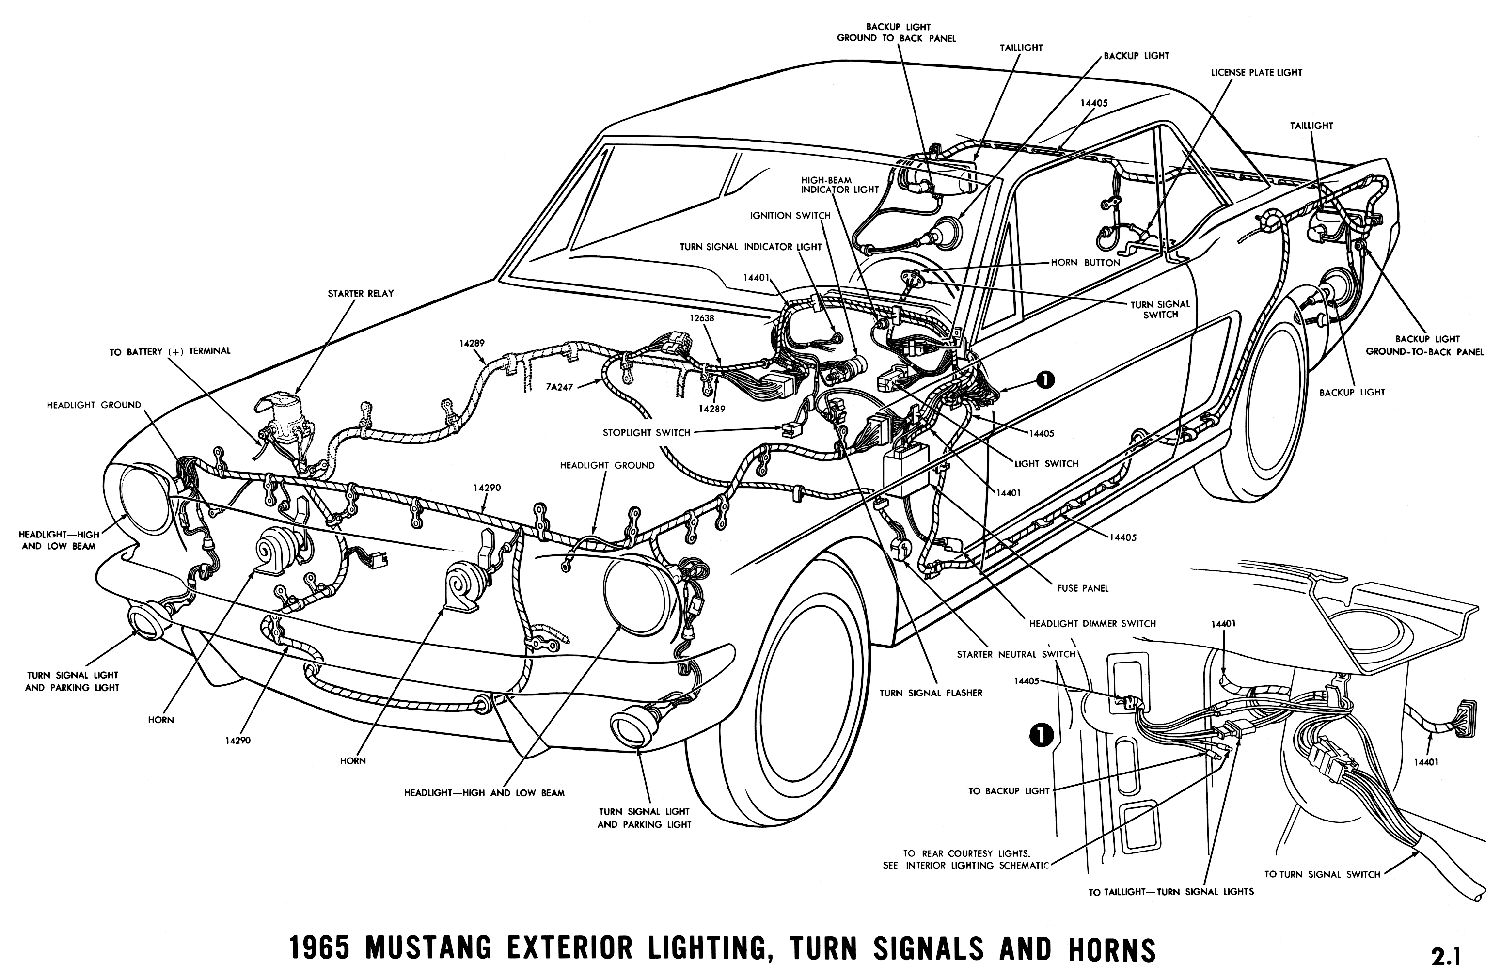 hight resolution of 1965 mustang exterior lighting turn signals and horns pictorial or schematic